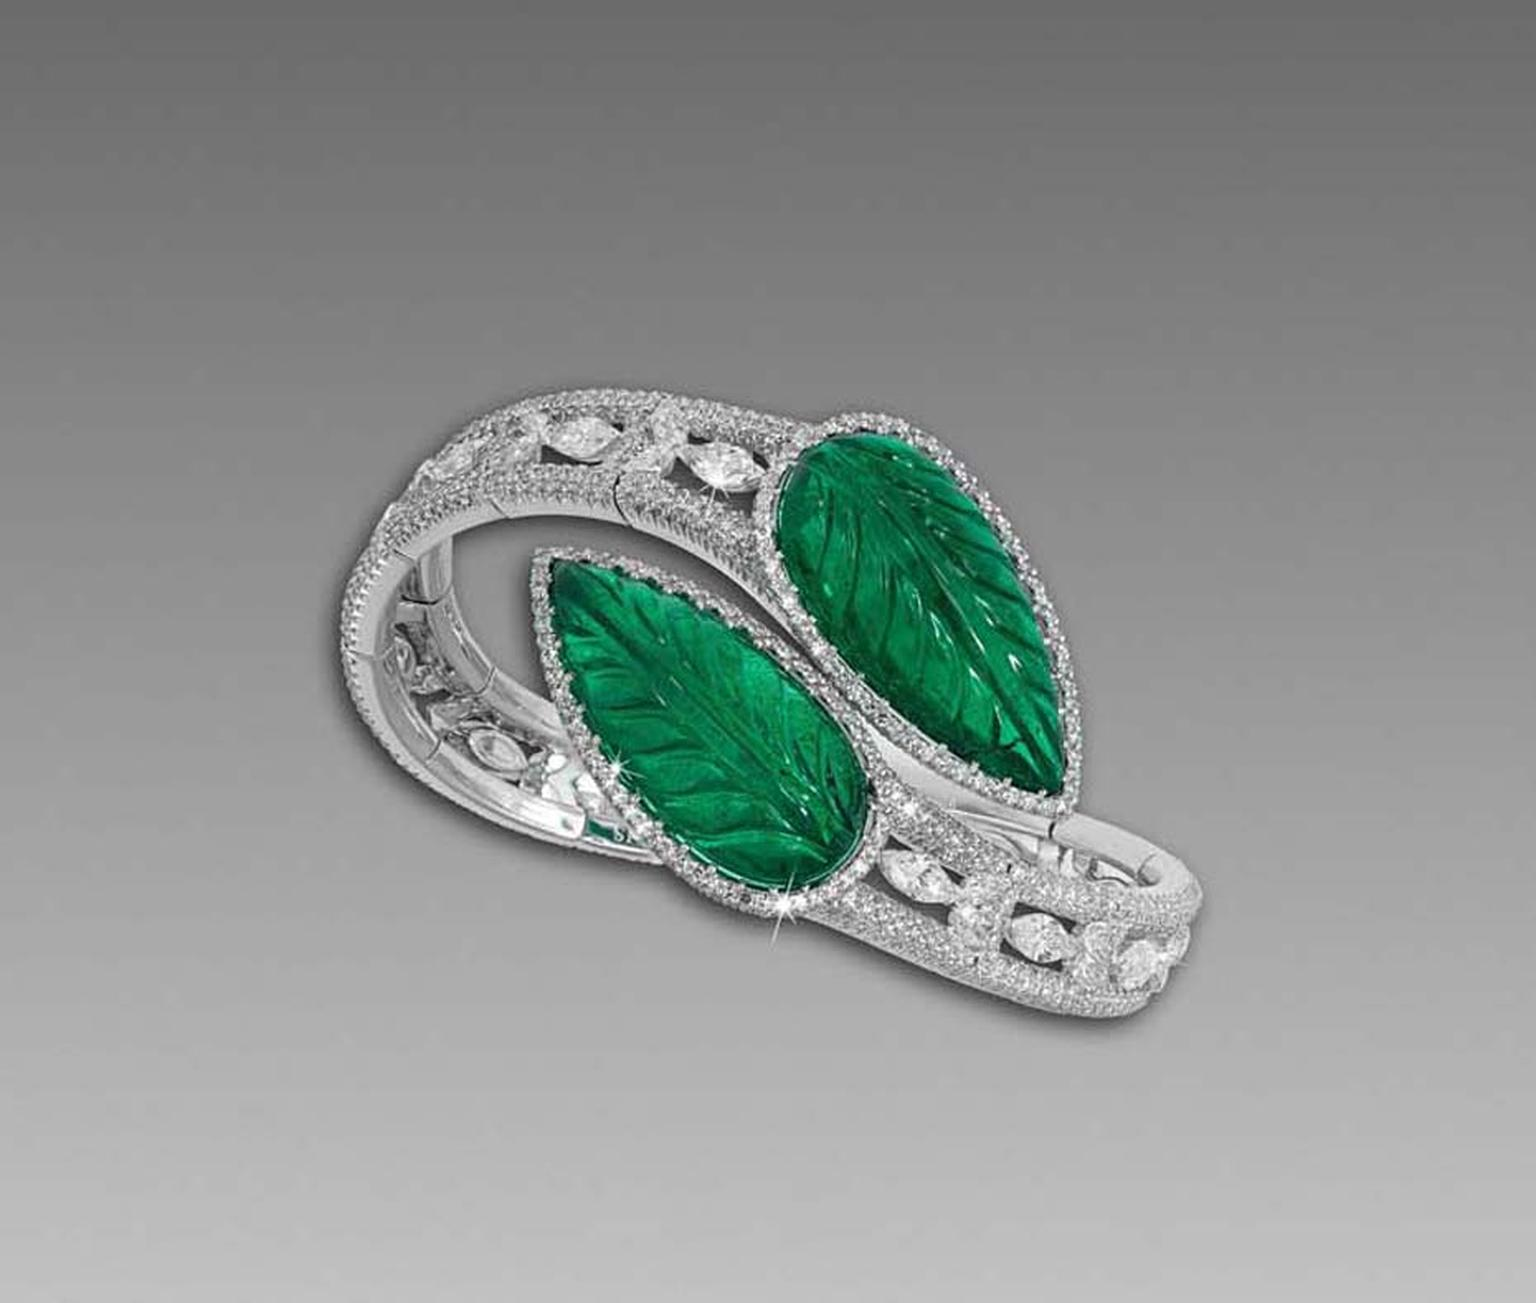 David Morris' use of African emeralds is showcased beautifully in this flexible carved Zambian emerald bangle with marquise, pear-shape and micro-set diamonds.